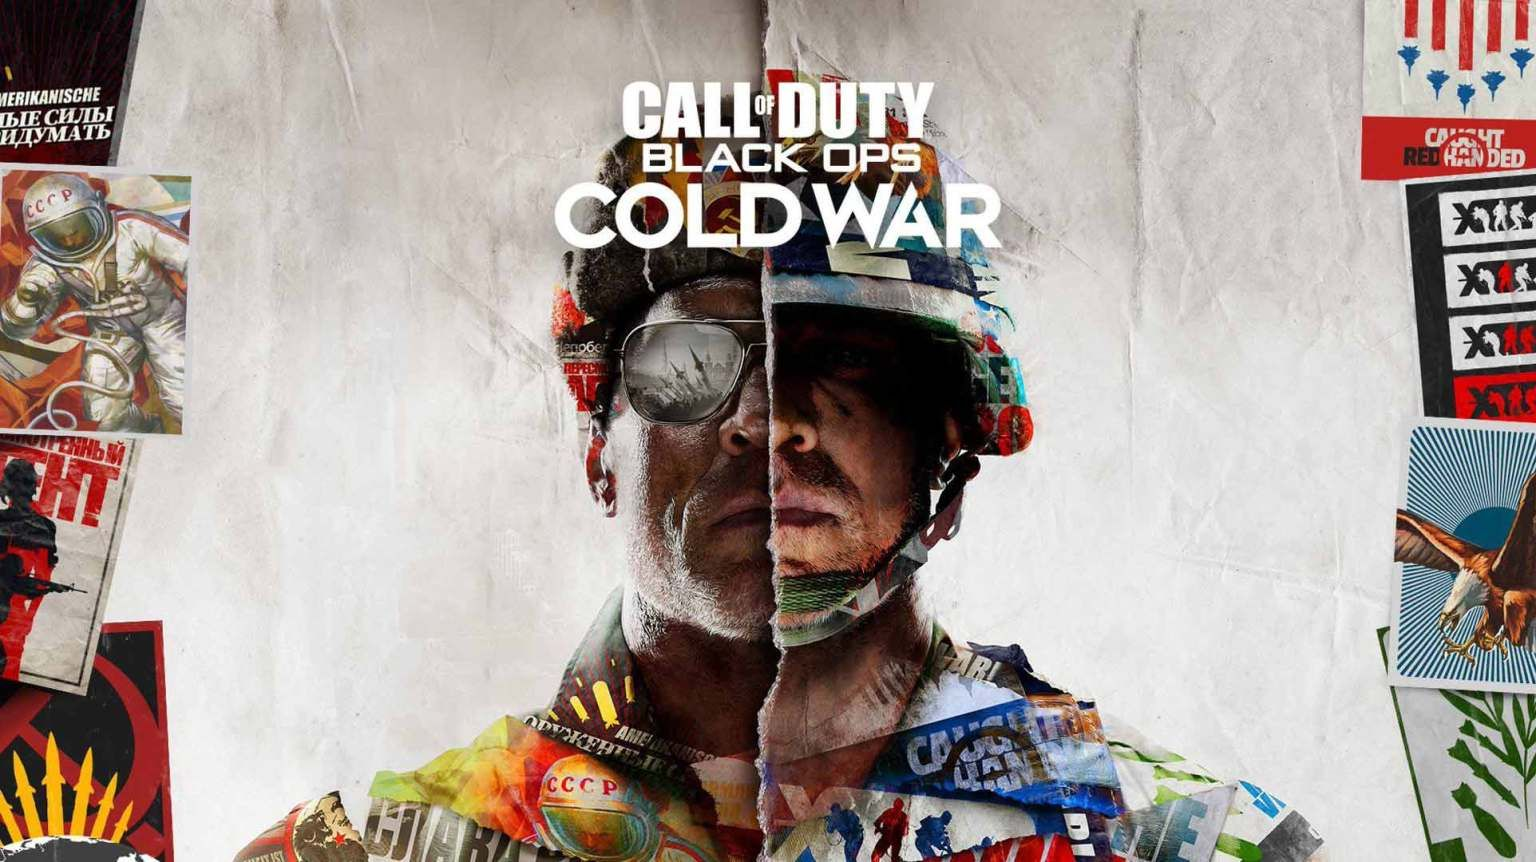 Call Of Duty Black Ops Cold War Promo Art Tweet Teases Upcoming Game Reveal Game Freaks 365 Call Of Duty Black Call Of Duty Black Ops